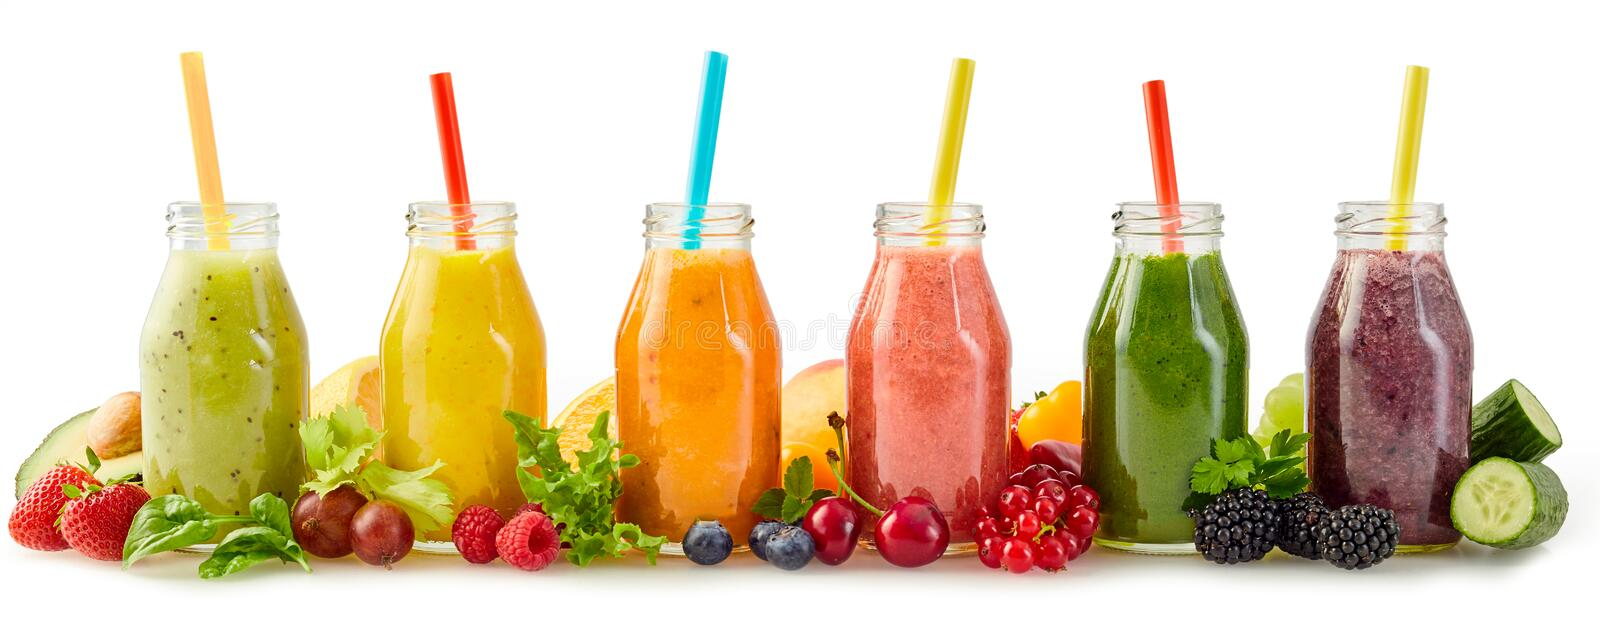 Healthy fresh fruit smoothies with ingredients royalty free stock images